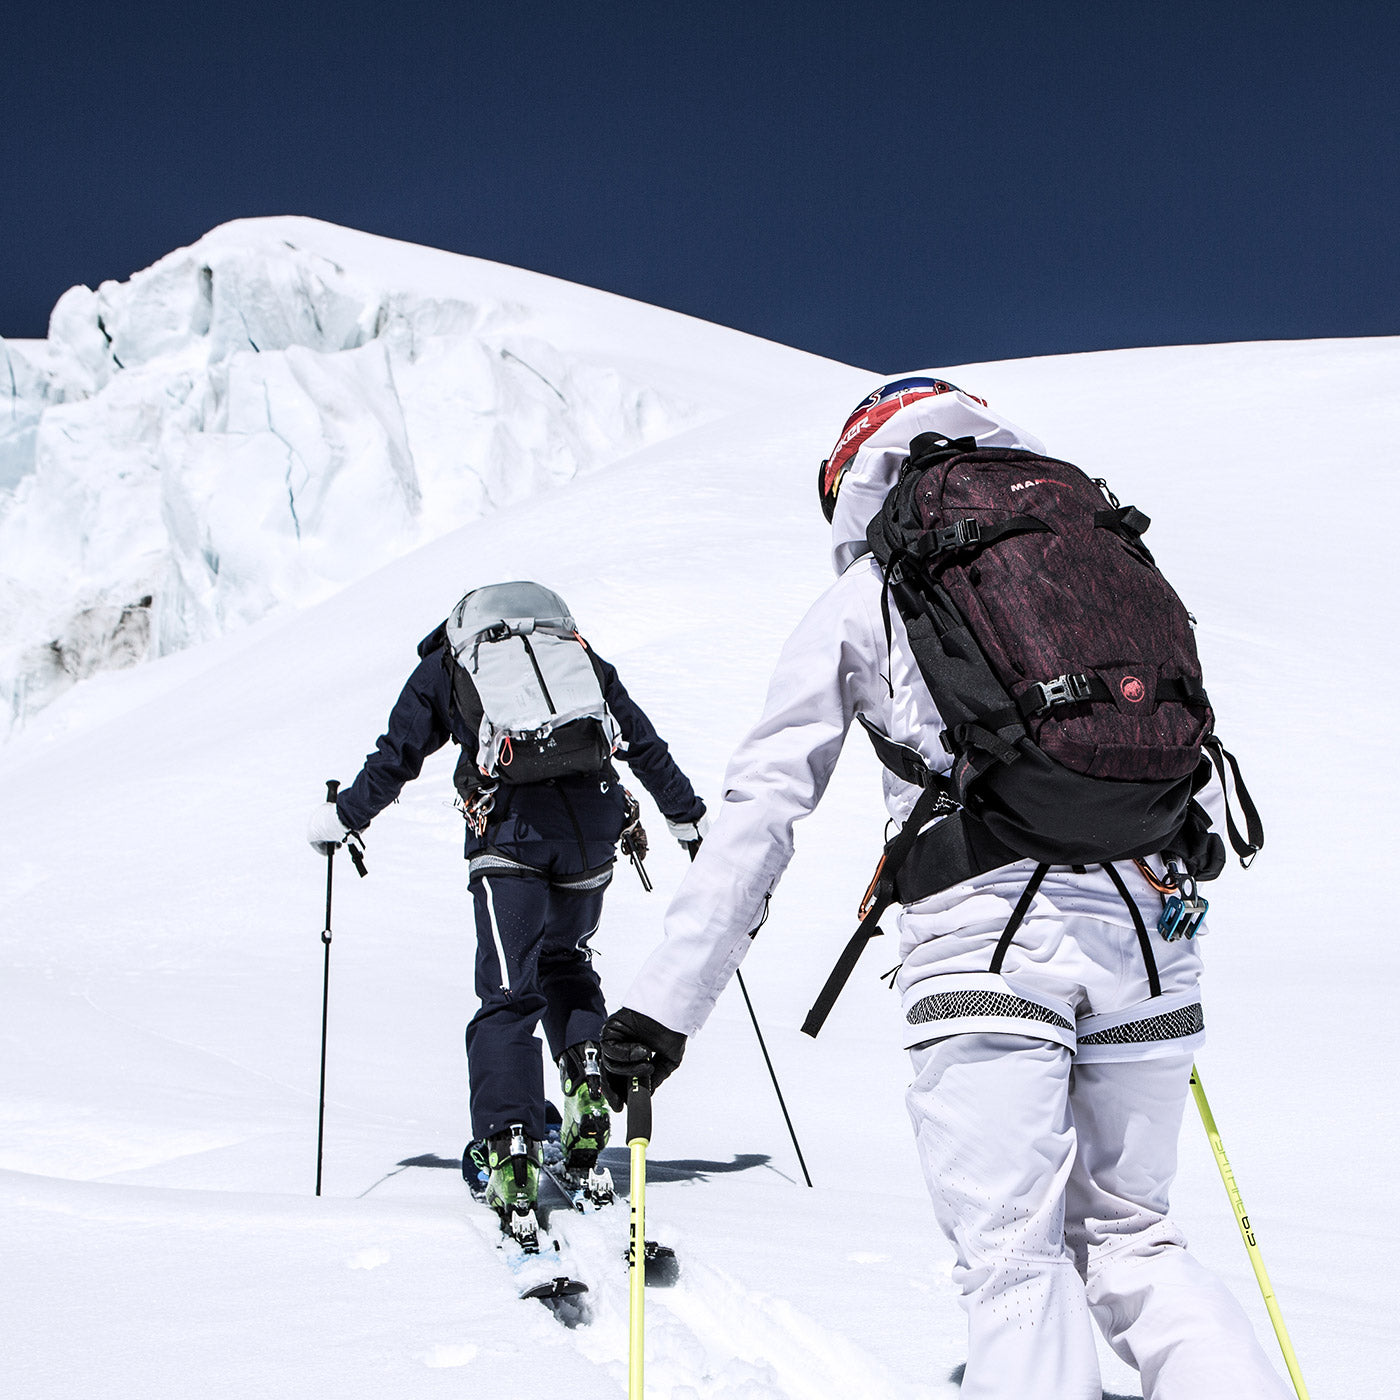 mammut australia new zealand skiing backpacks